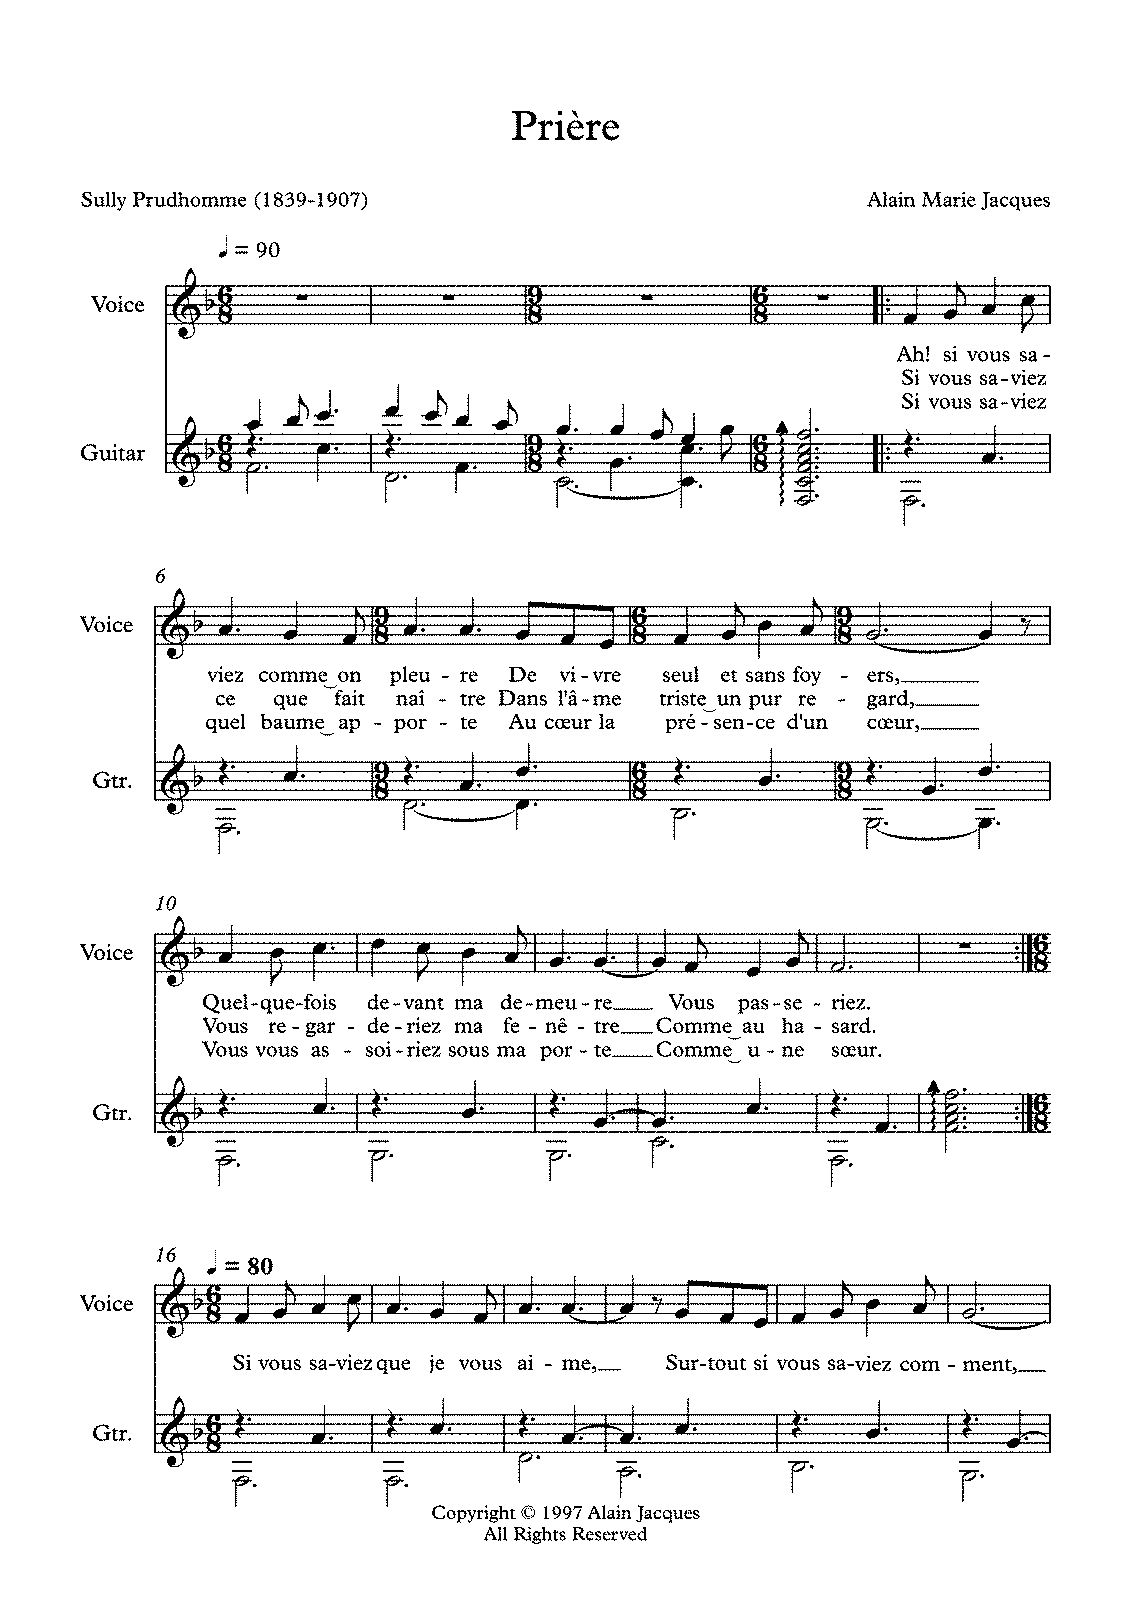 PMLP451083-Prière (A. Jacques - Sully Prudhomme) - Full Score.pdf